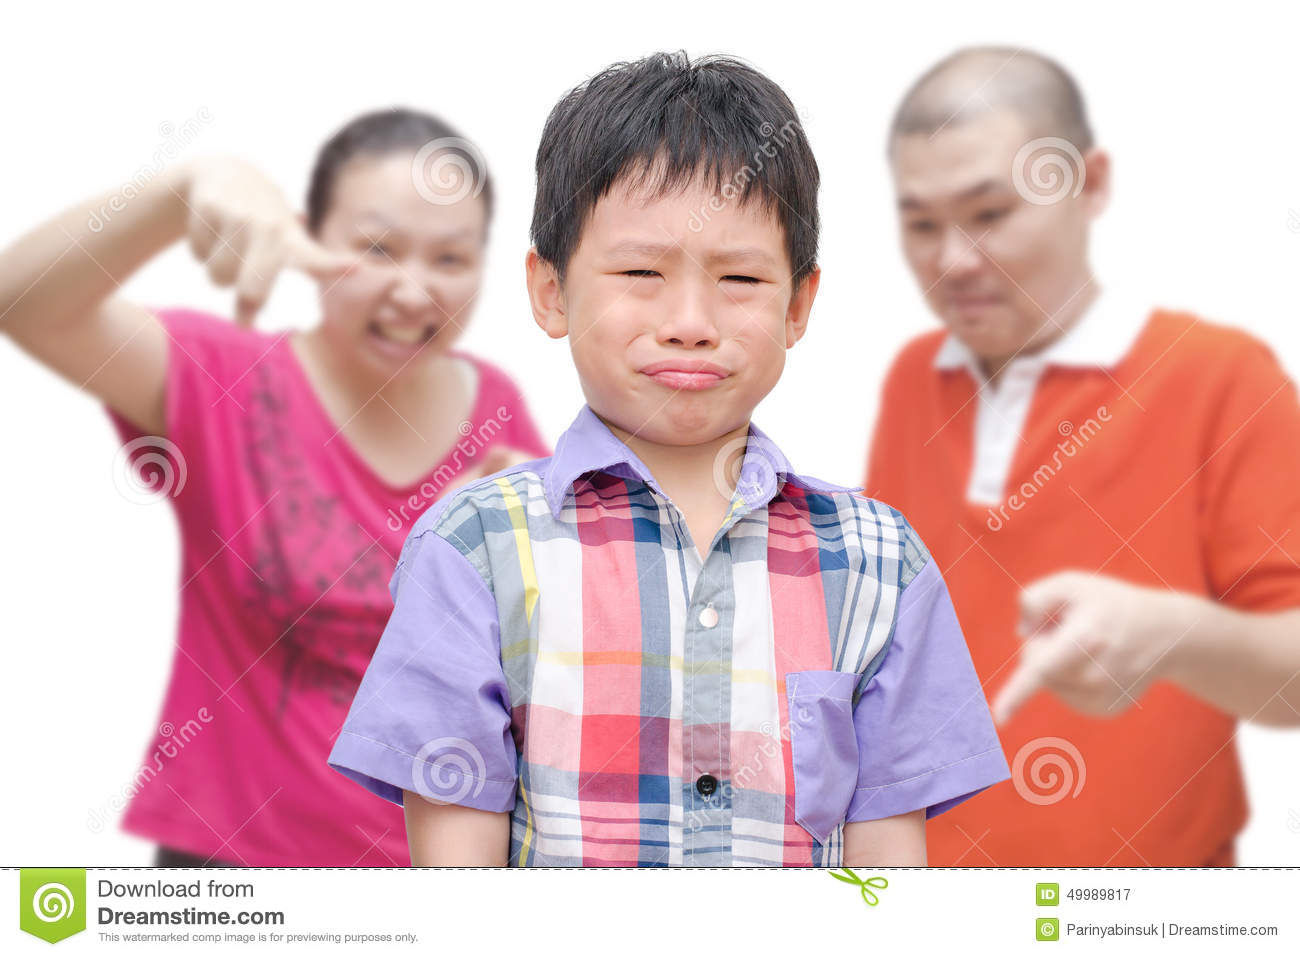 Boy crying while parents scold him